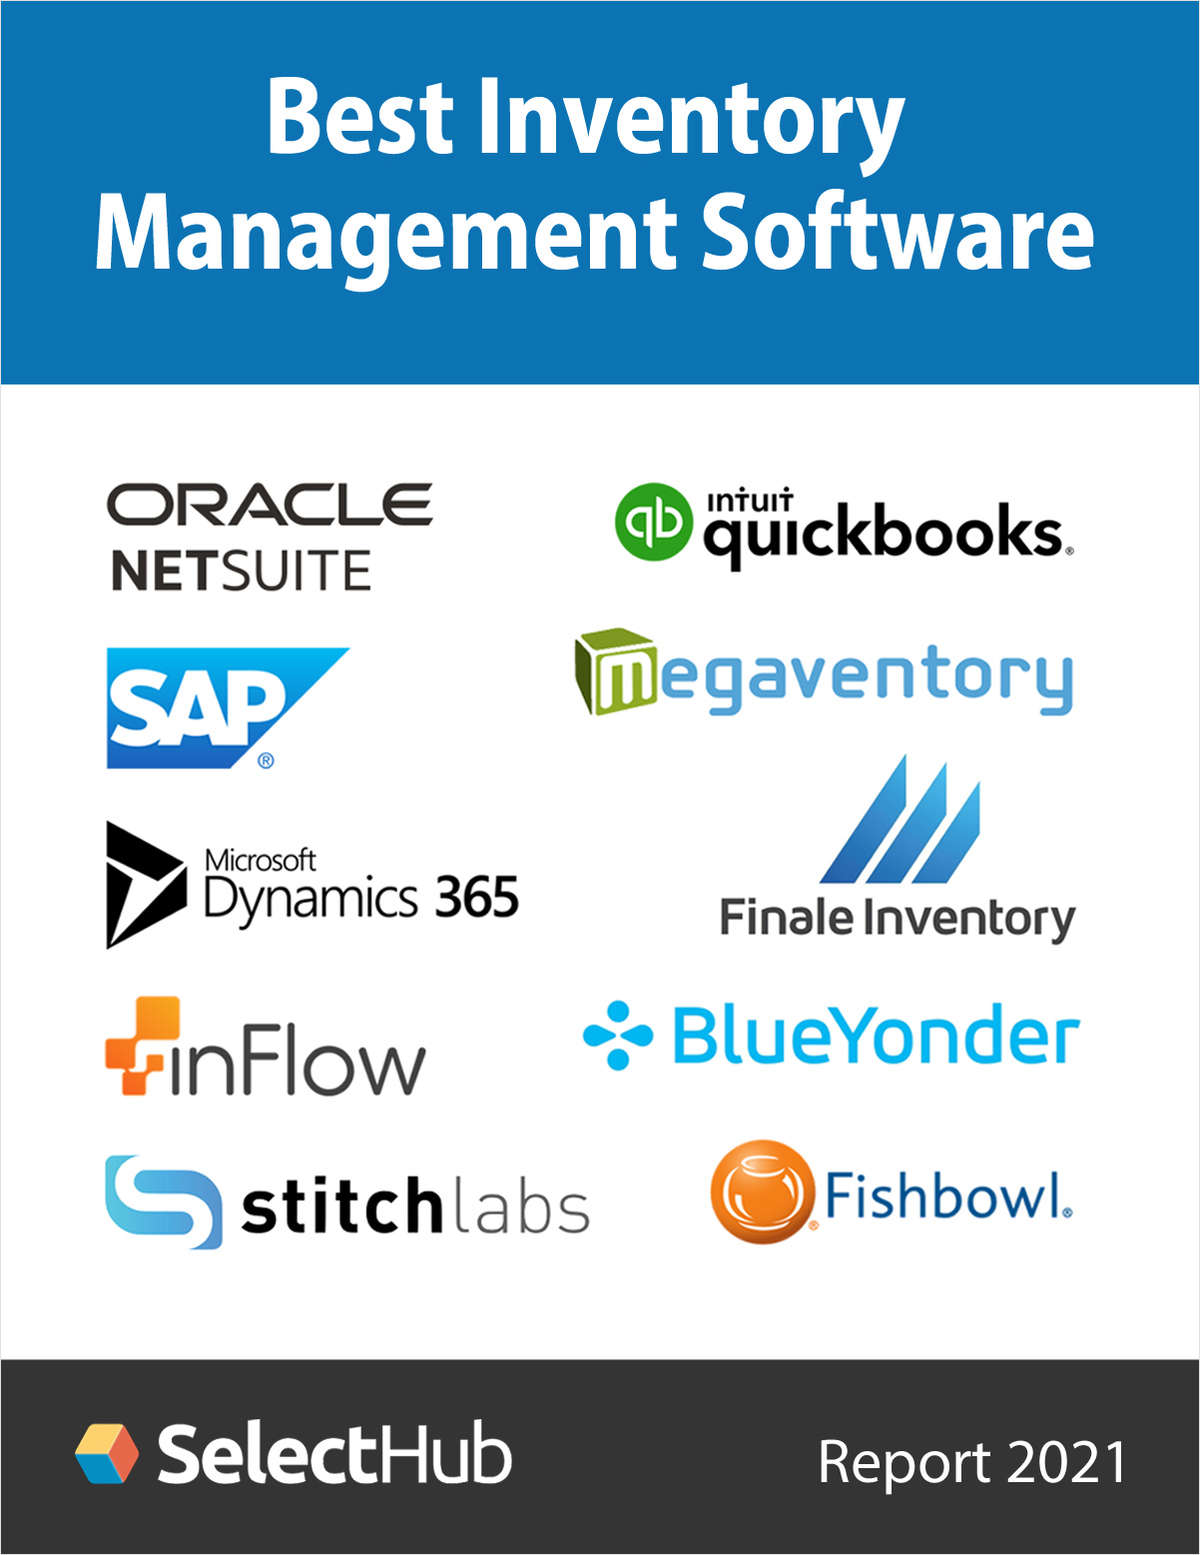 Best Inventory Management Software 2021--Expert Reviews, Recommendations, Pricing